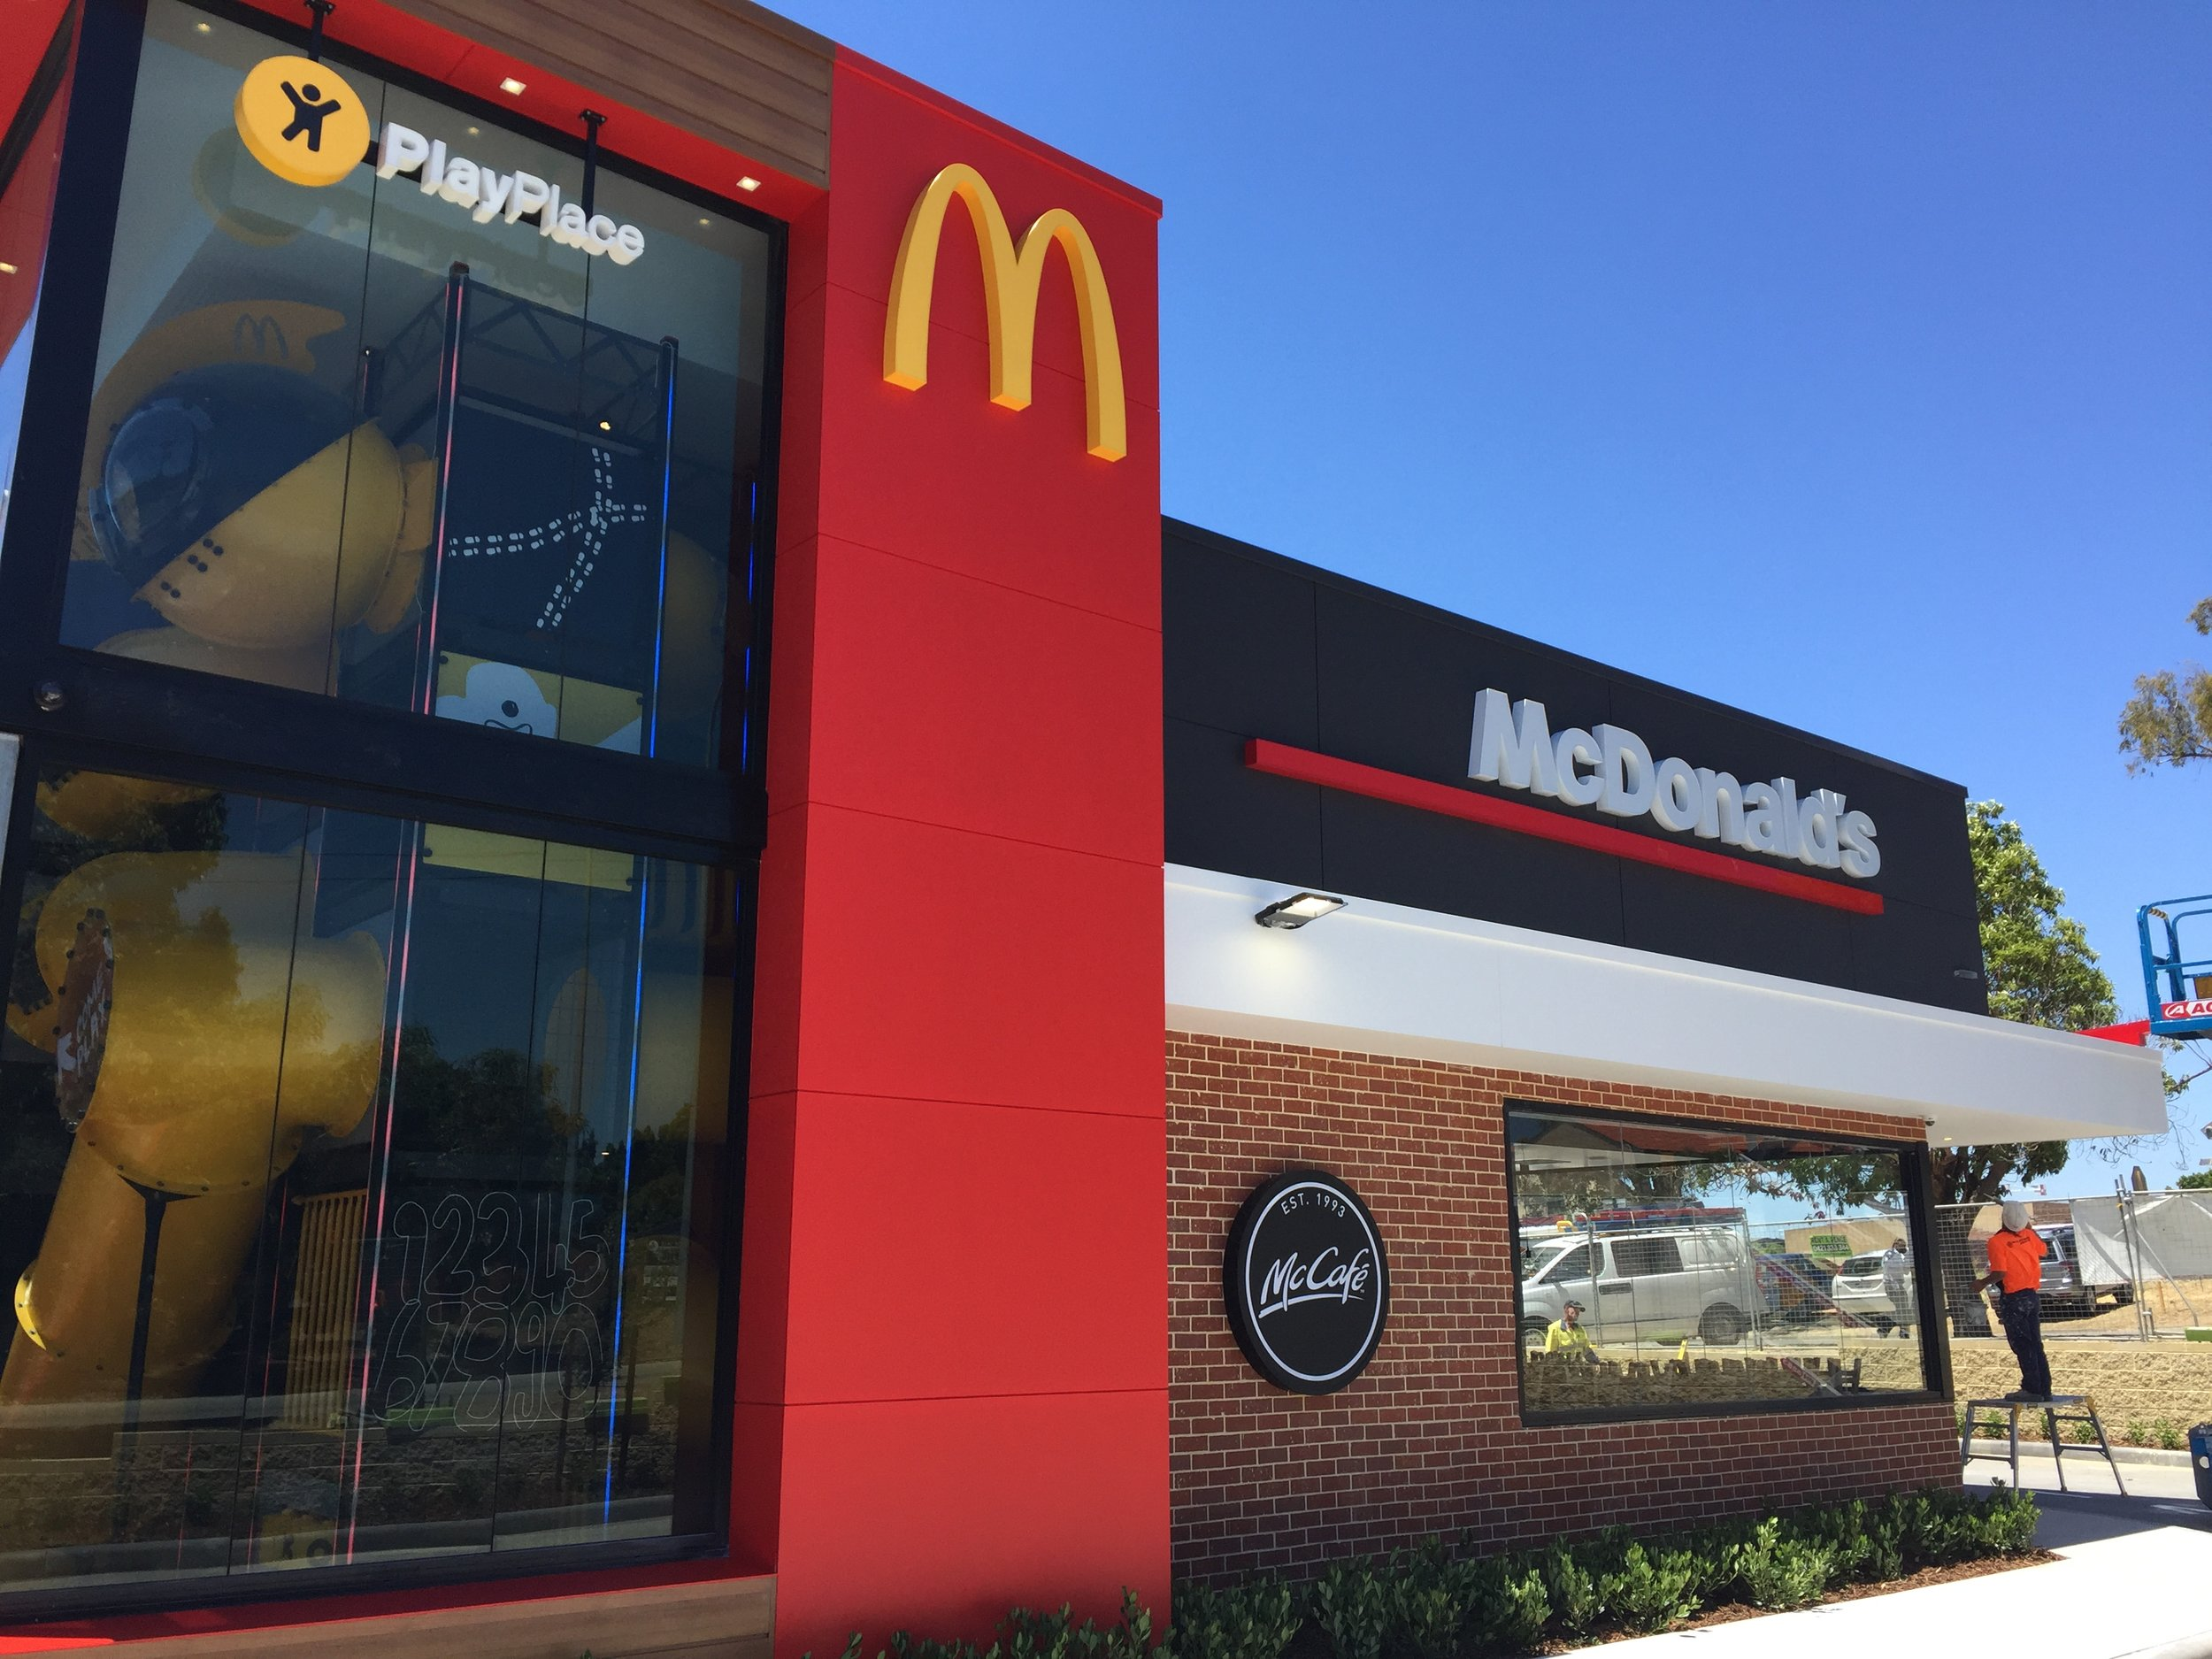 McDonalds Jolimont - Entrance.JPG